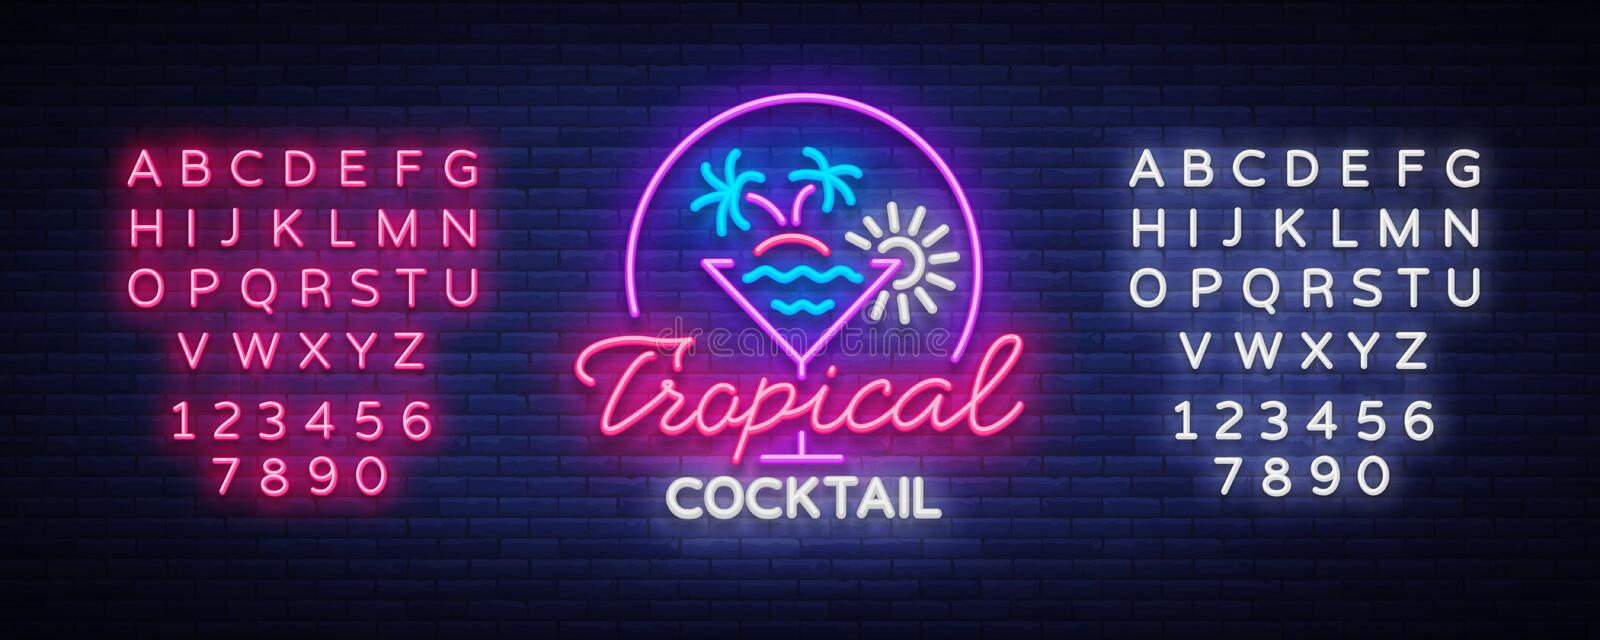 Tropical Cocktail neon sign. Cocktail Logo, Neon Style, Light Banner, Night Bright Neon Advertising for Cocktail Bar. Party, Pub. Alcohol. Vector illustration stock illustration